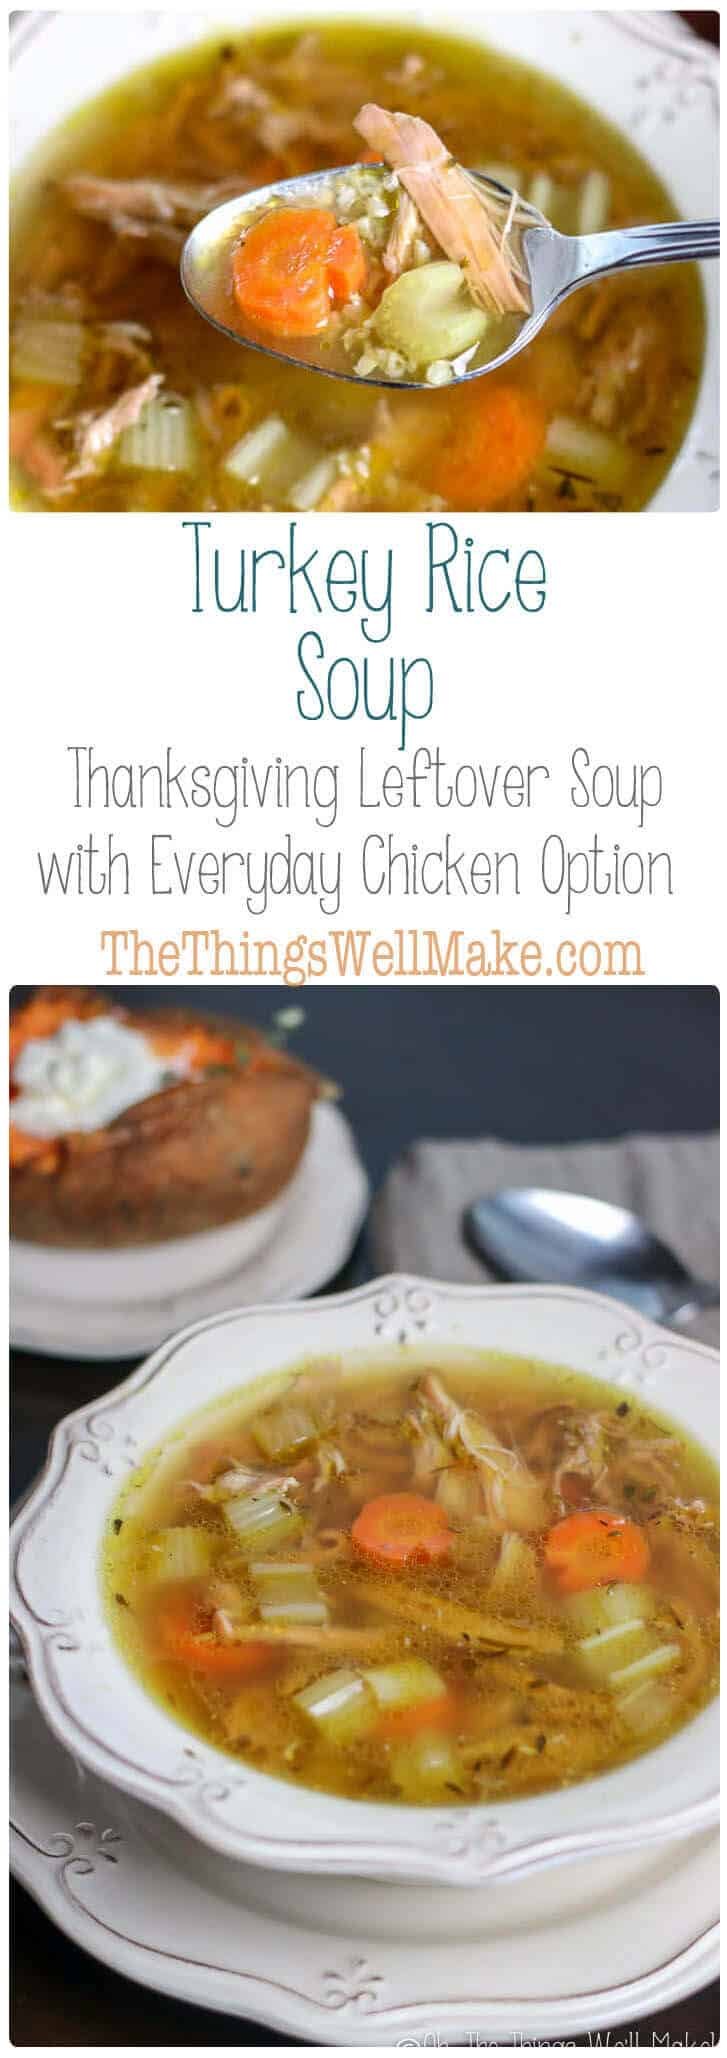 Don't throw away the skin, bones and leftover turkey pieces, make this turkey rice soup, the best Thanksgiving leftover soup idea! You can also do this any time of year with leftover chicken! #Thanksgiving #leftovers #soup